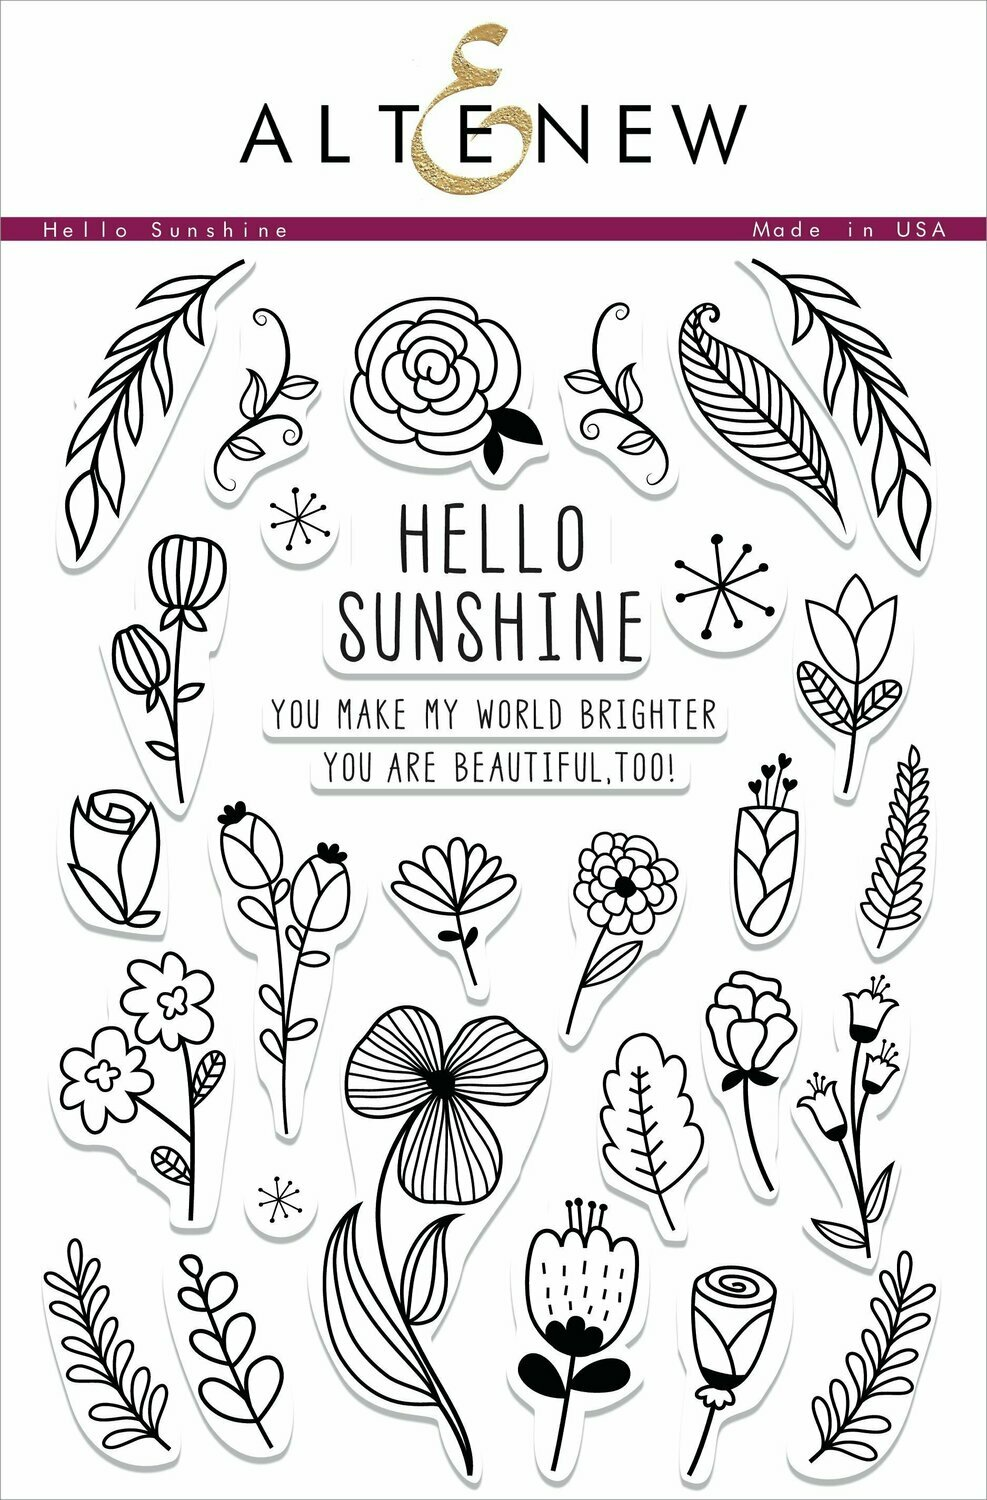 Altenew HELLO SUNSHINE Clear Stamp Set